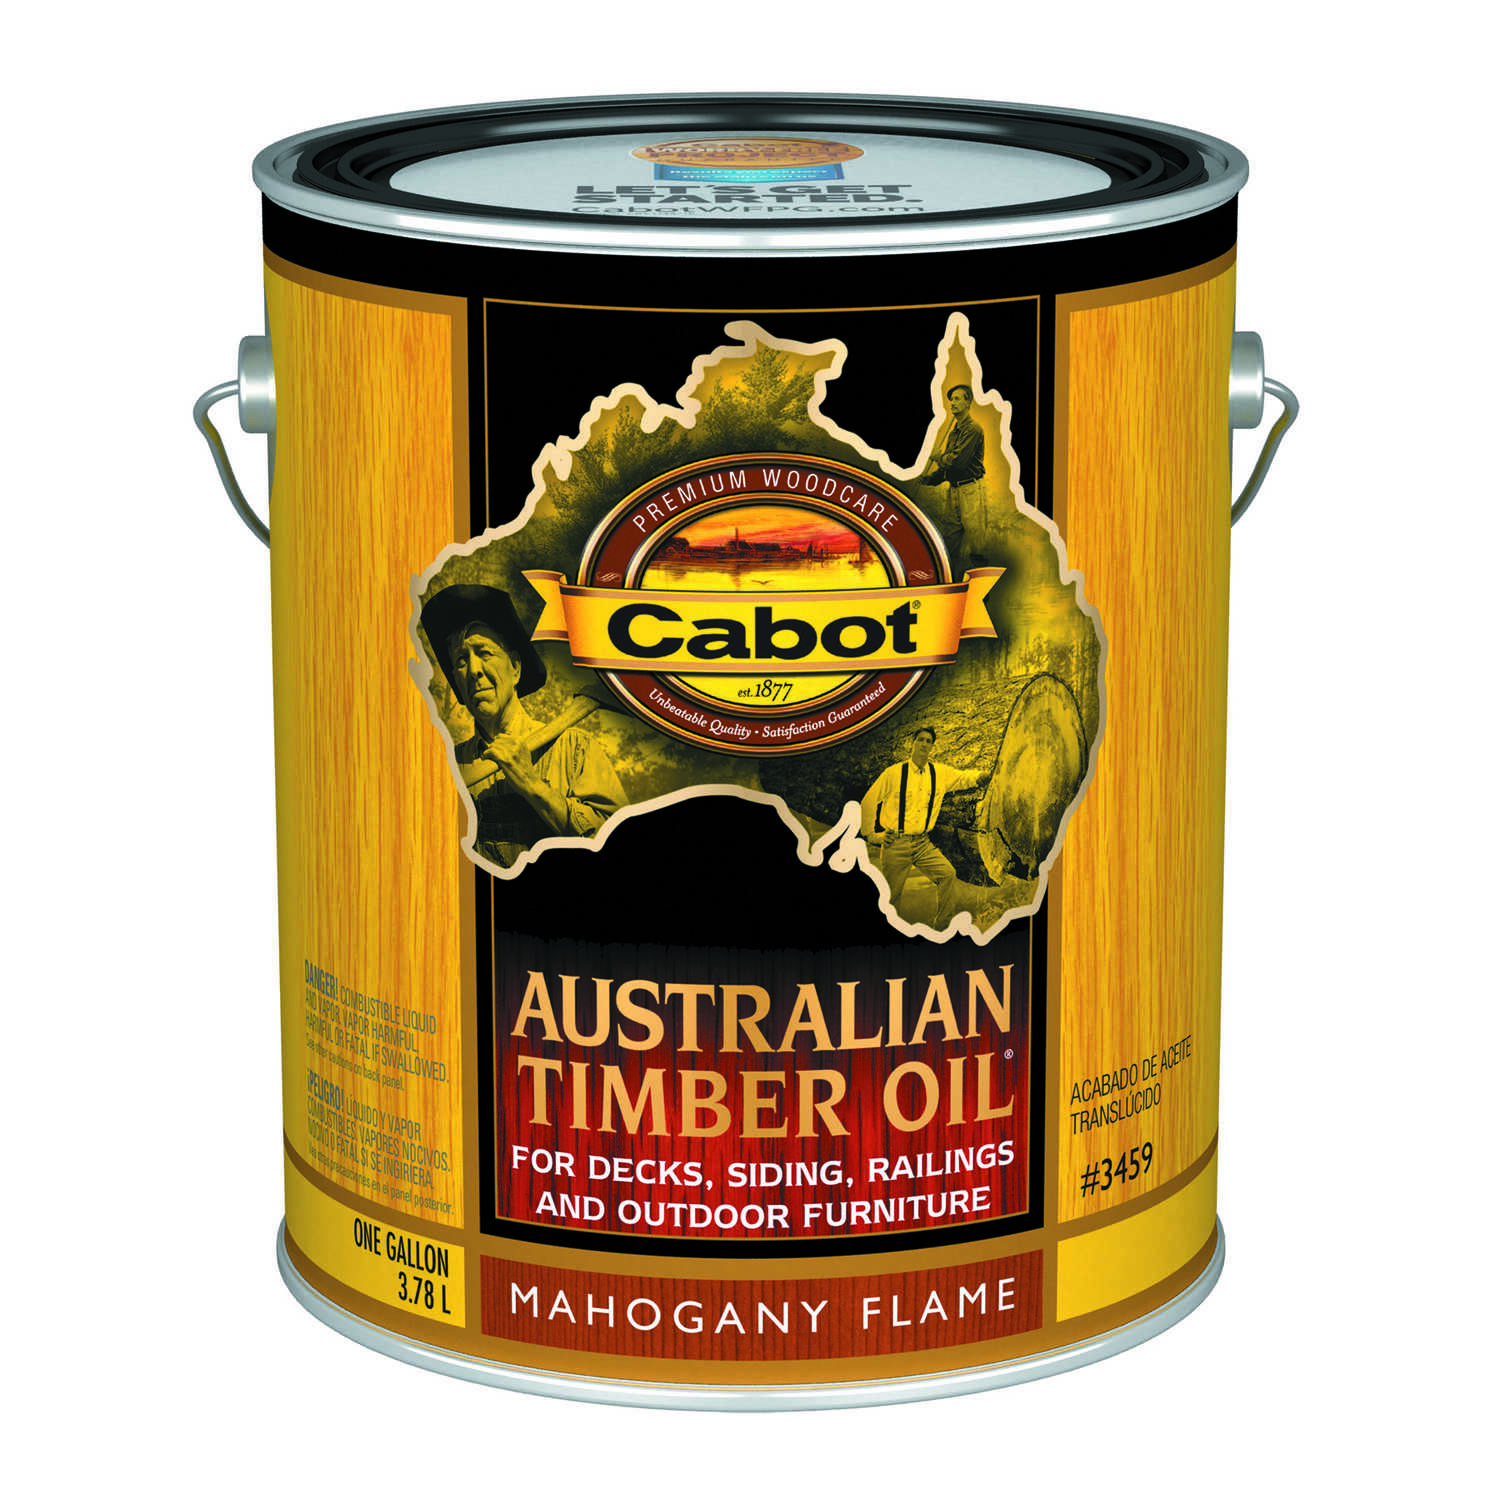 Cabot  Transparent  Mahogany Flame  Oil-Based  Penetrating Oil  Australian Timber Oil  1 gal.